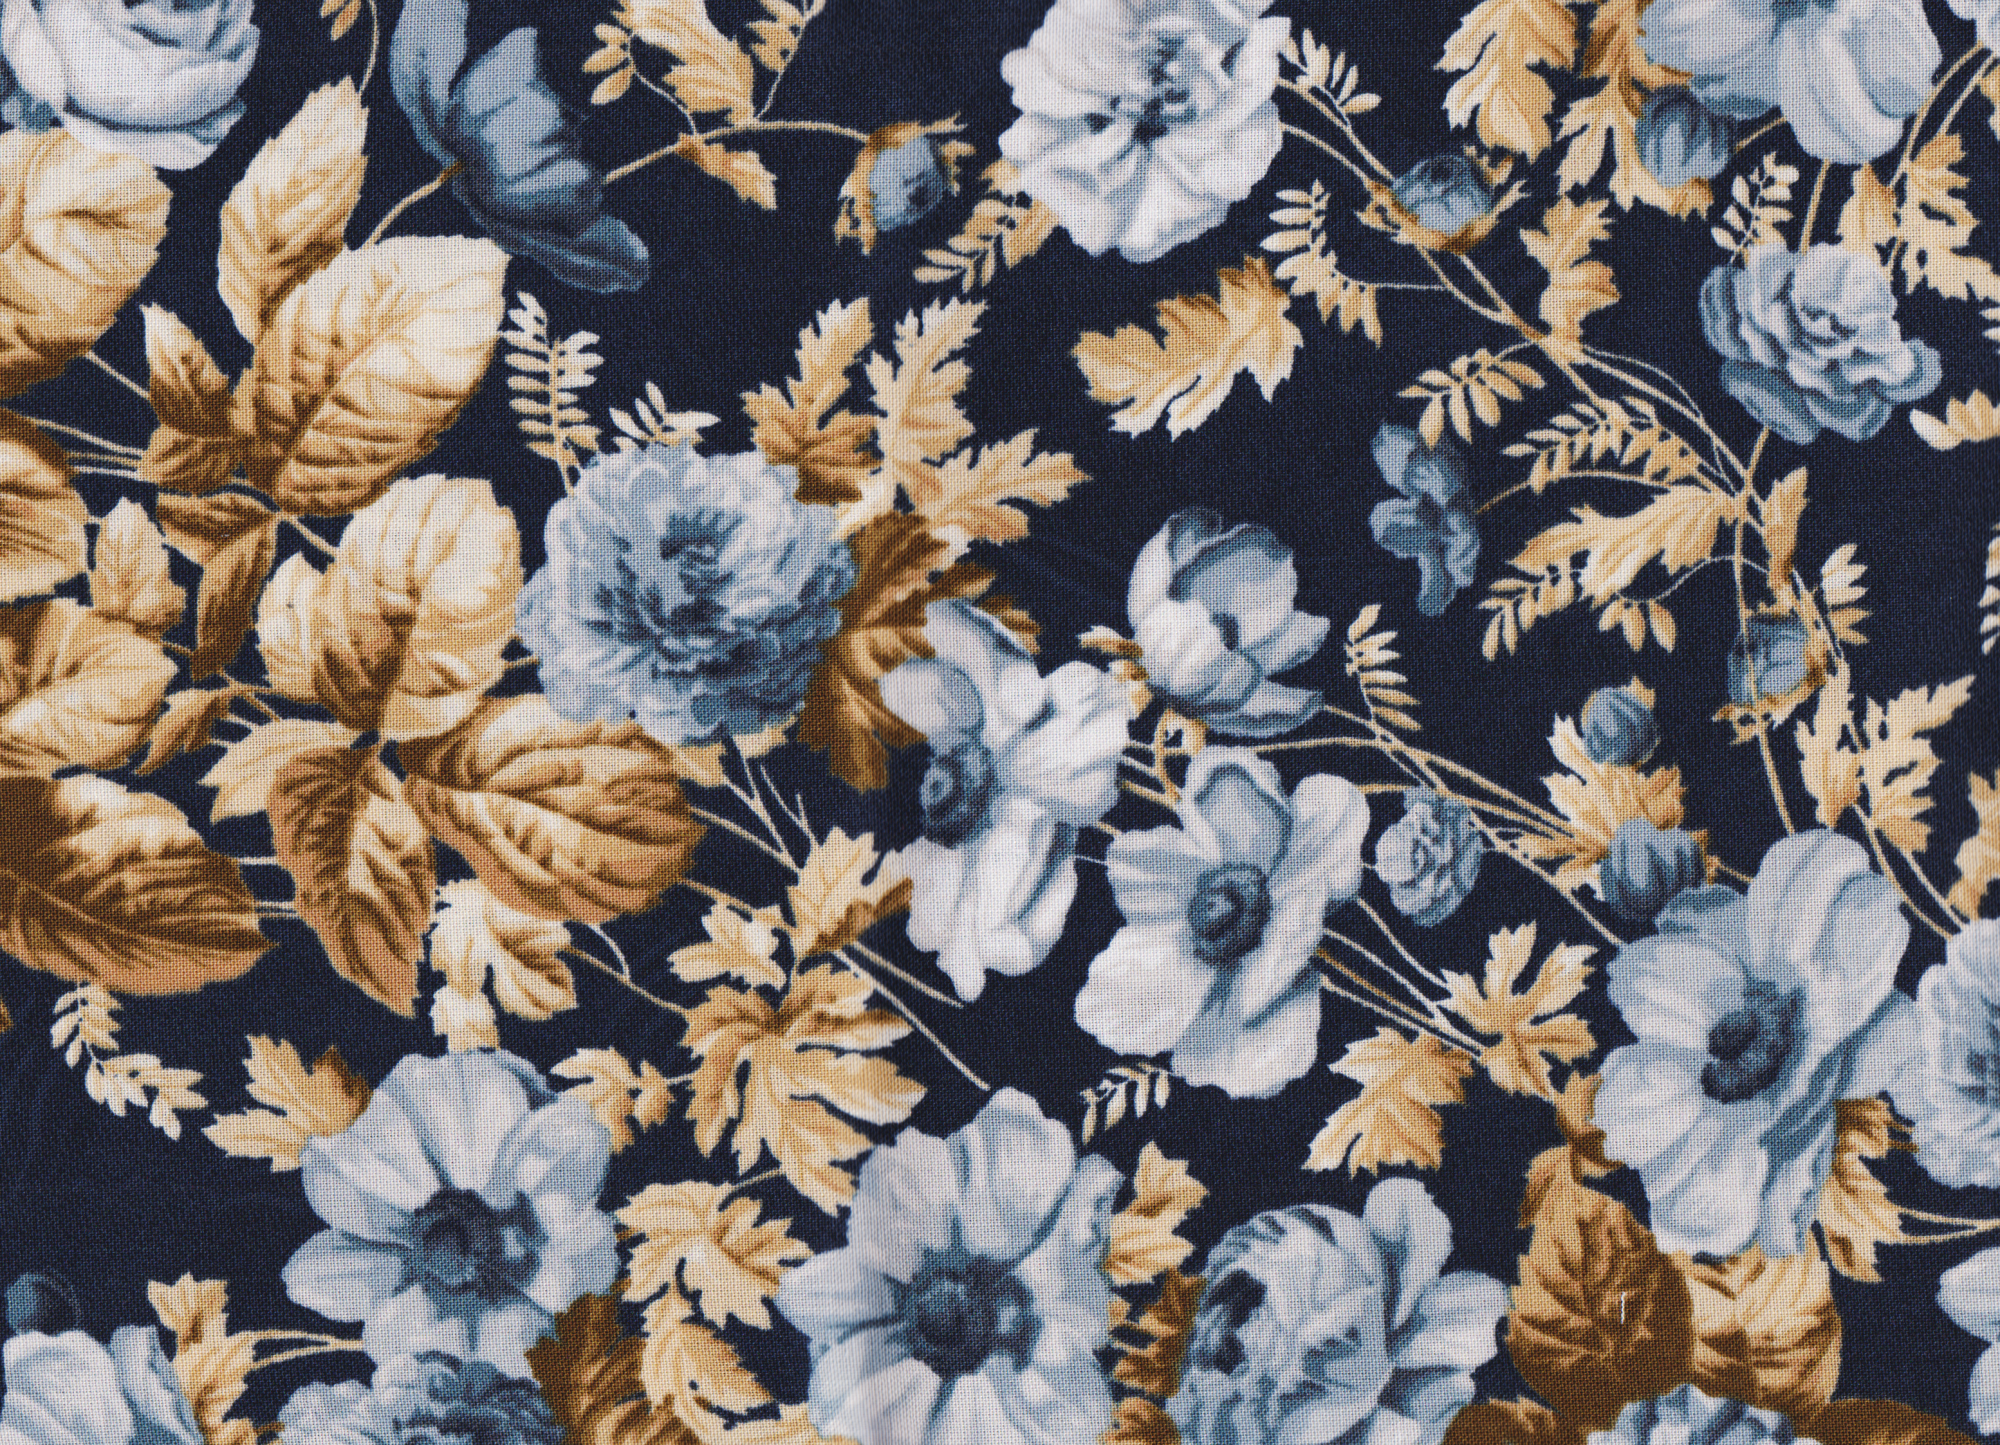 PROMO* Boundless Pre Cuts - 81389 Navy Floral